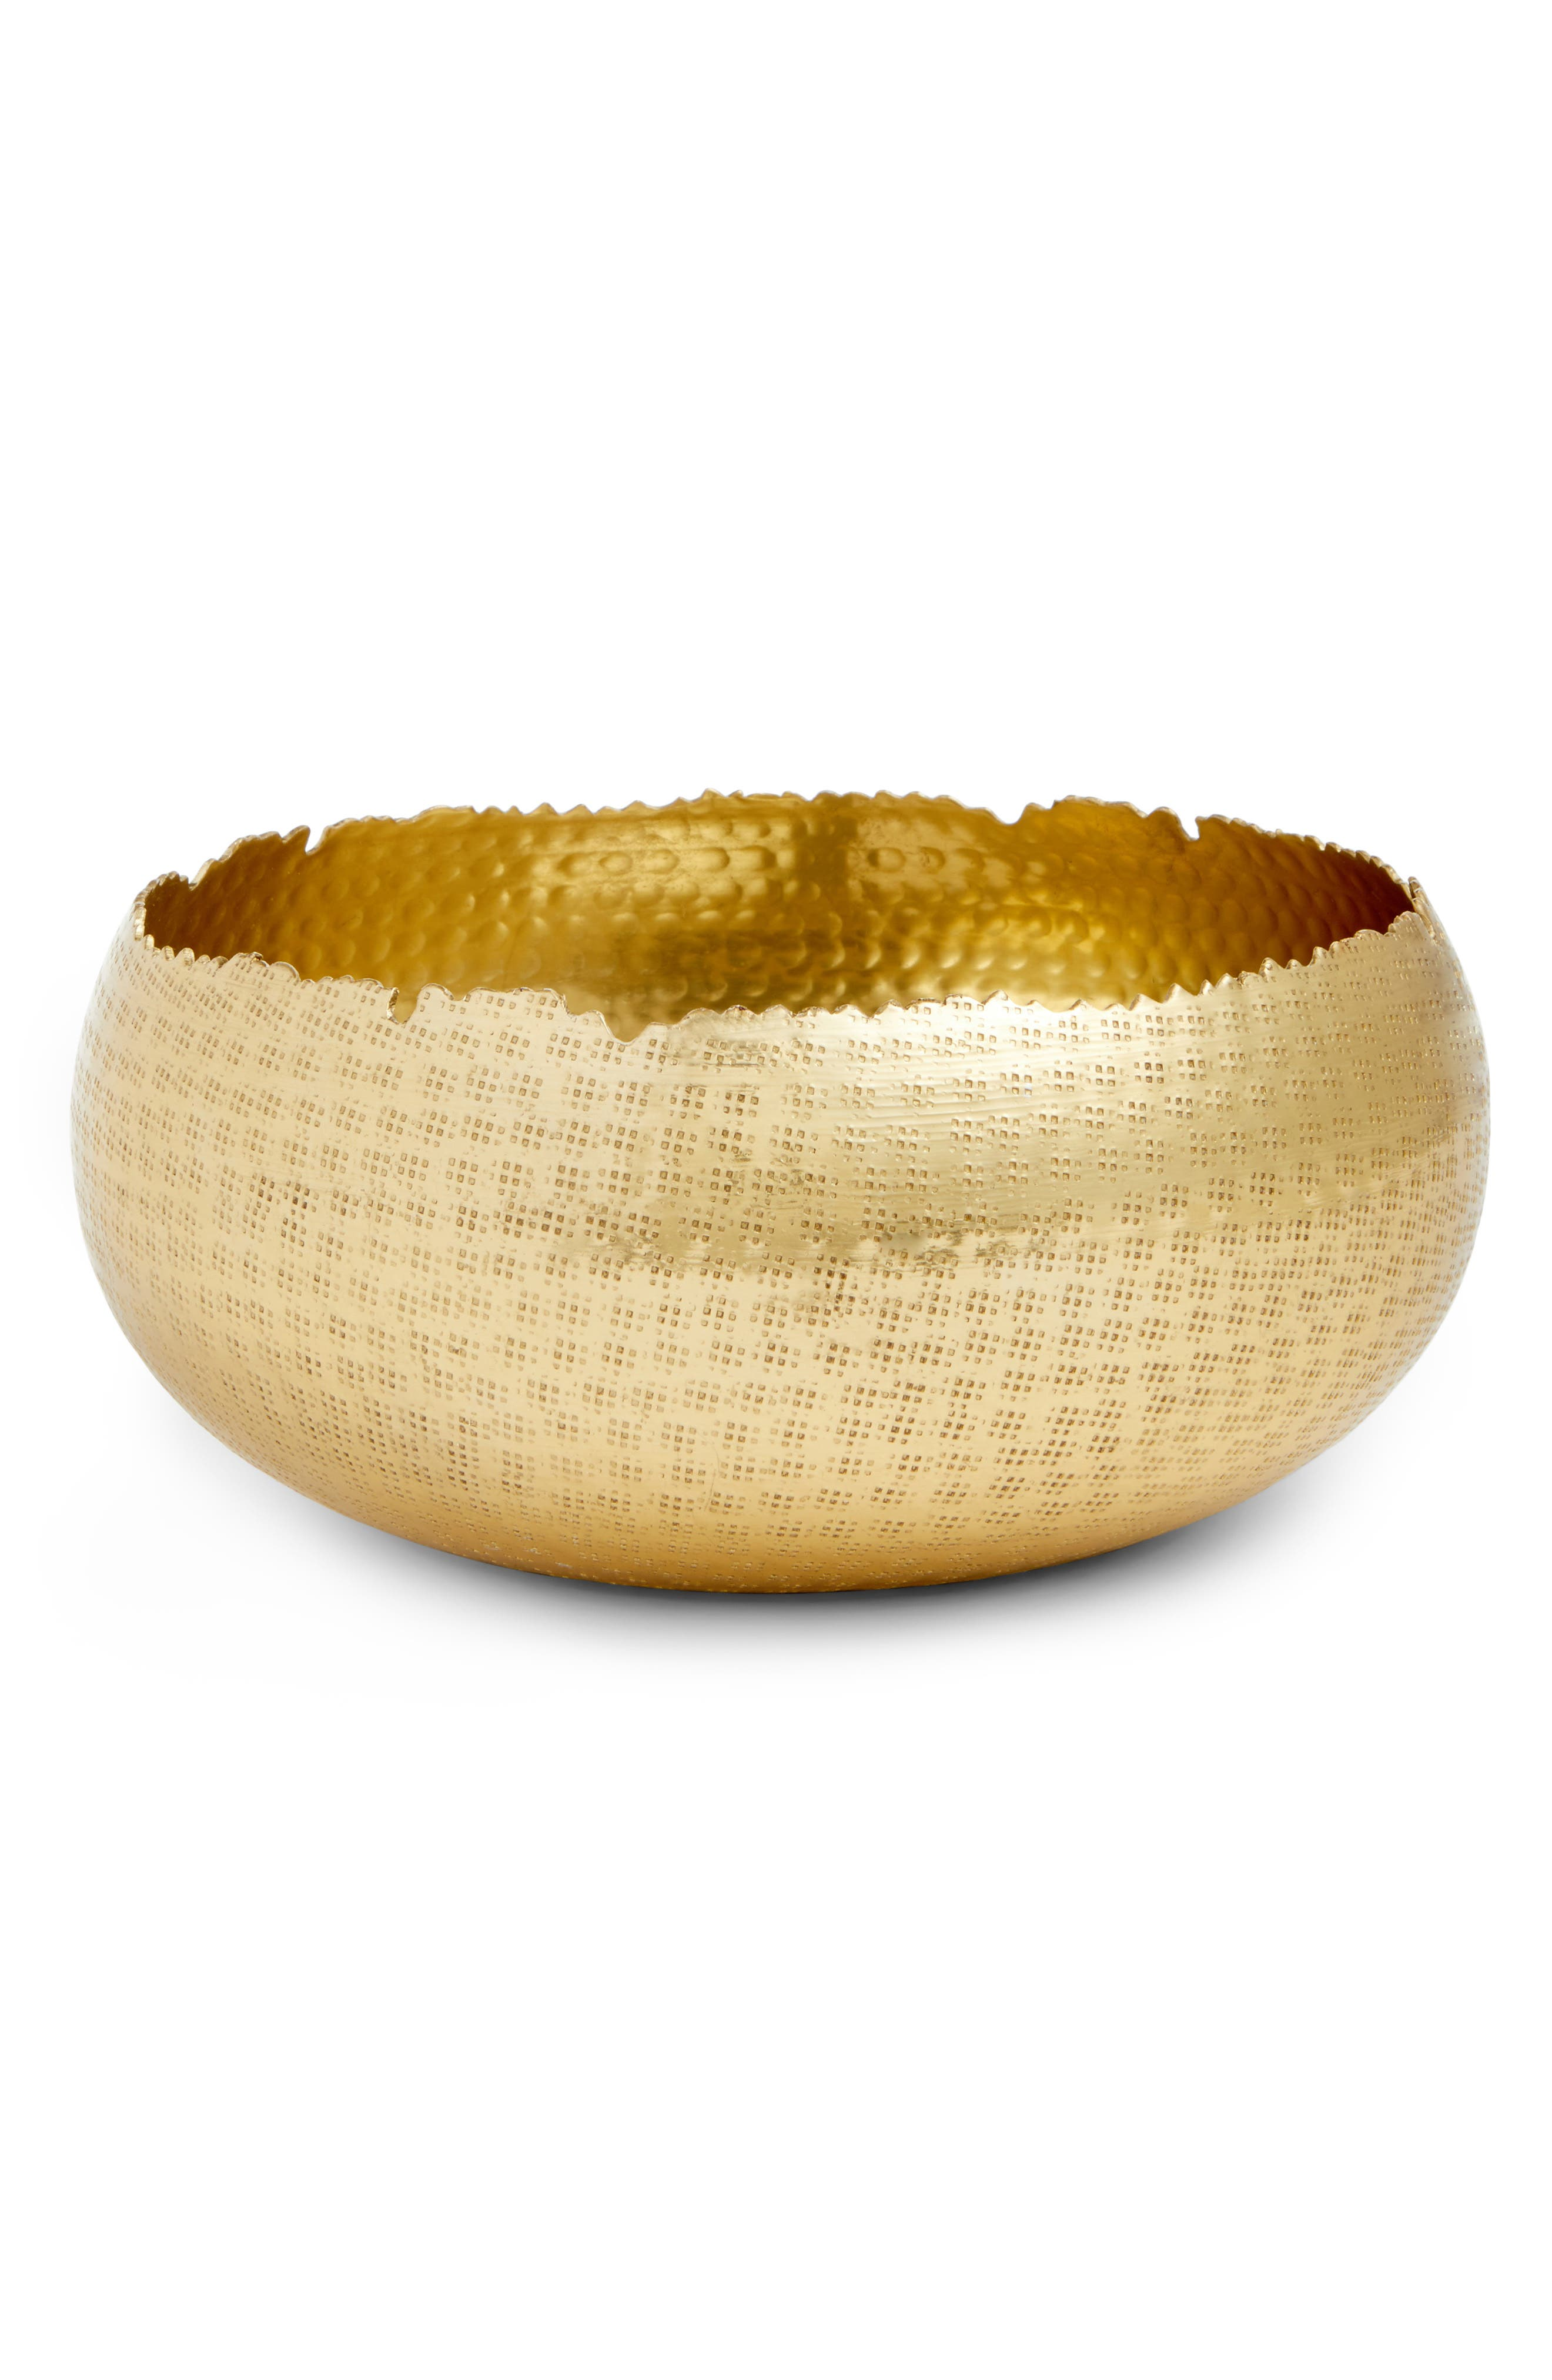 Large Hammered Bowl,                             Main thumbnail 1, color,                             Gold